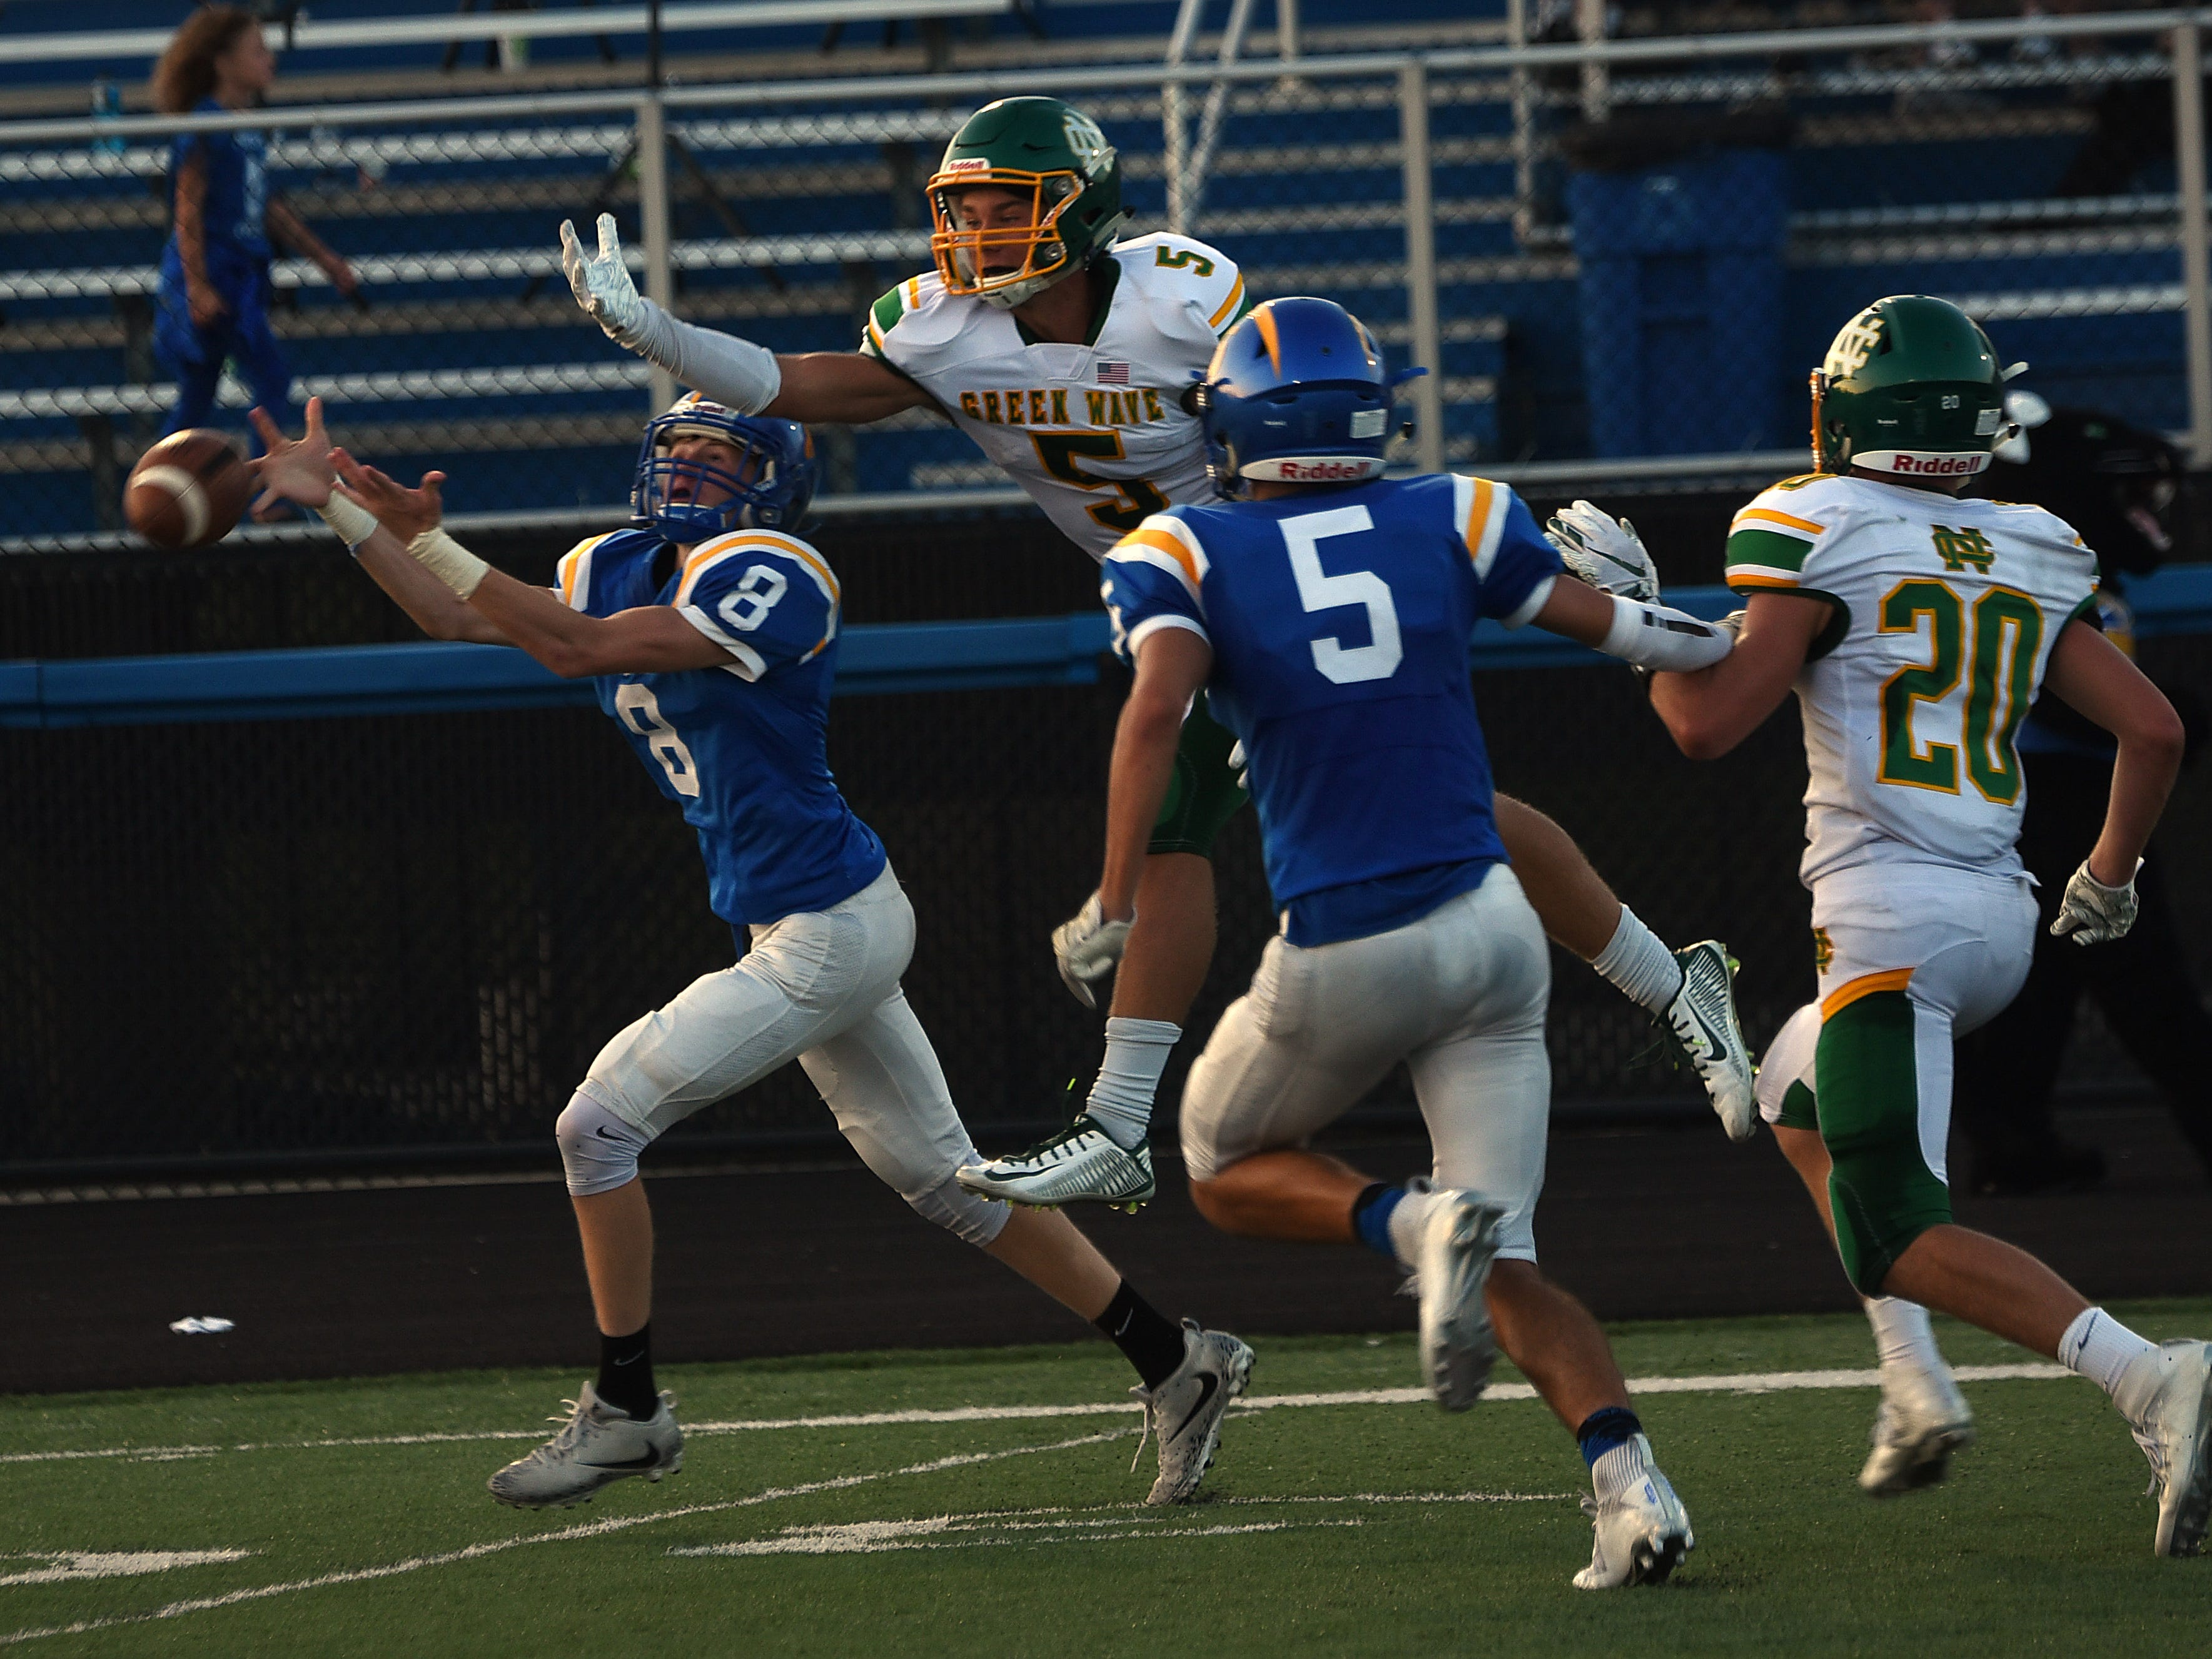 Newark Catholic's Lucas Pierce (right) breaks up a pass intended for Maysville's Colton Lafollette (left) during Thursday night's season opener at Maysville. The Green Wave defeated the Panthers 17-13.